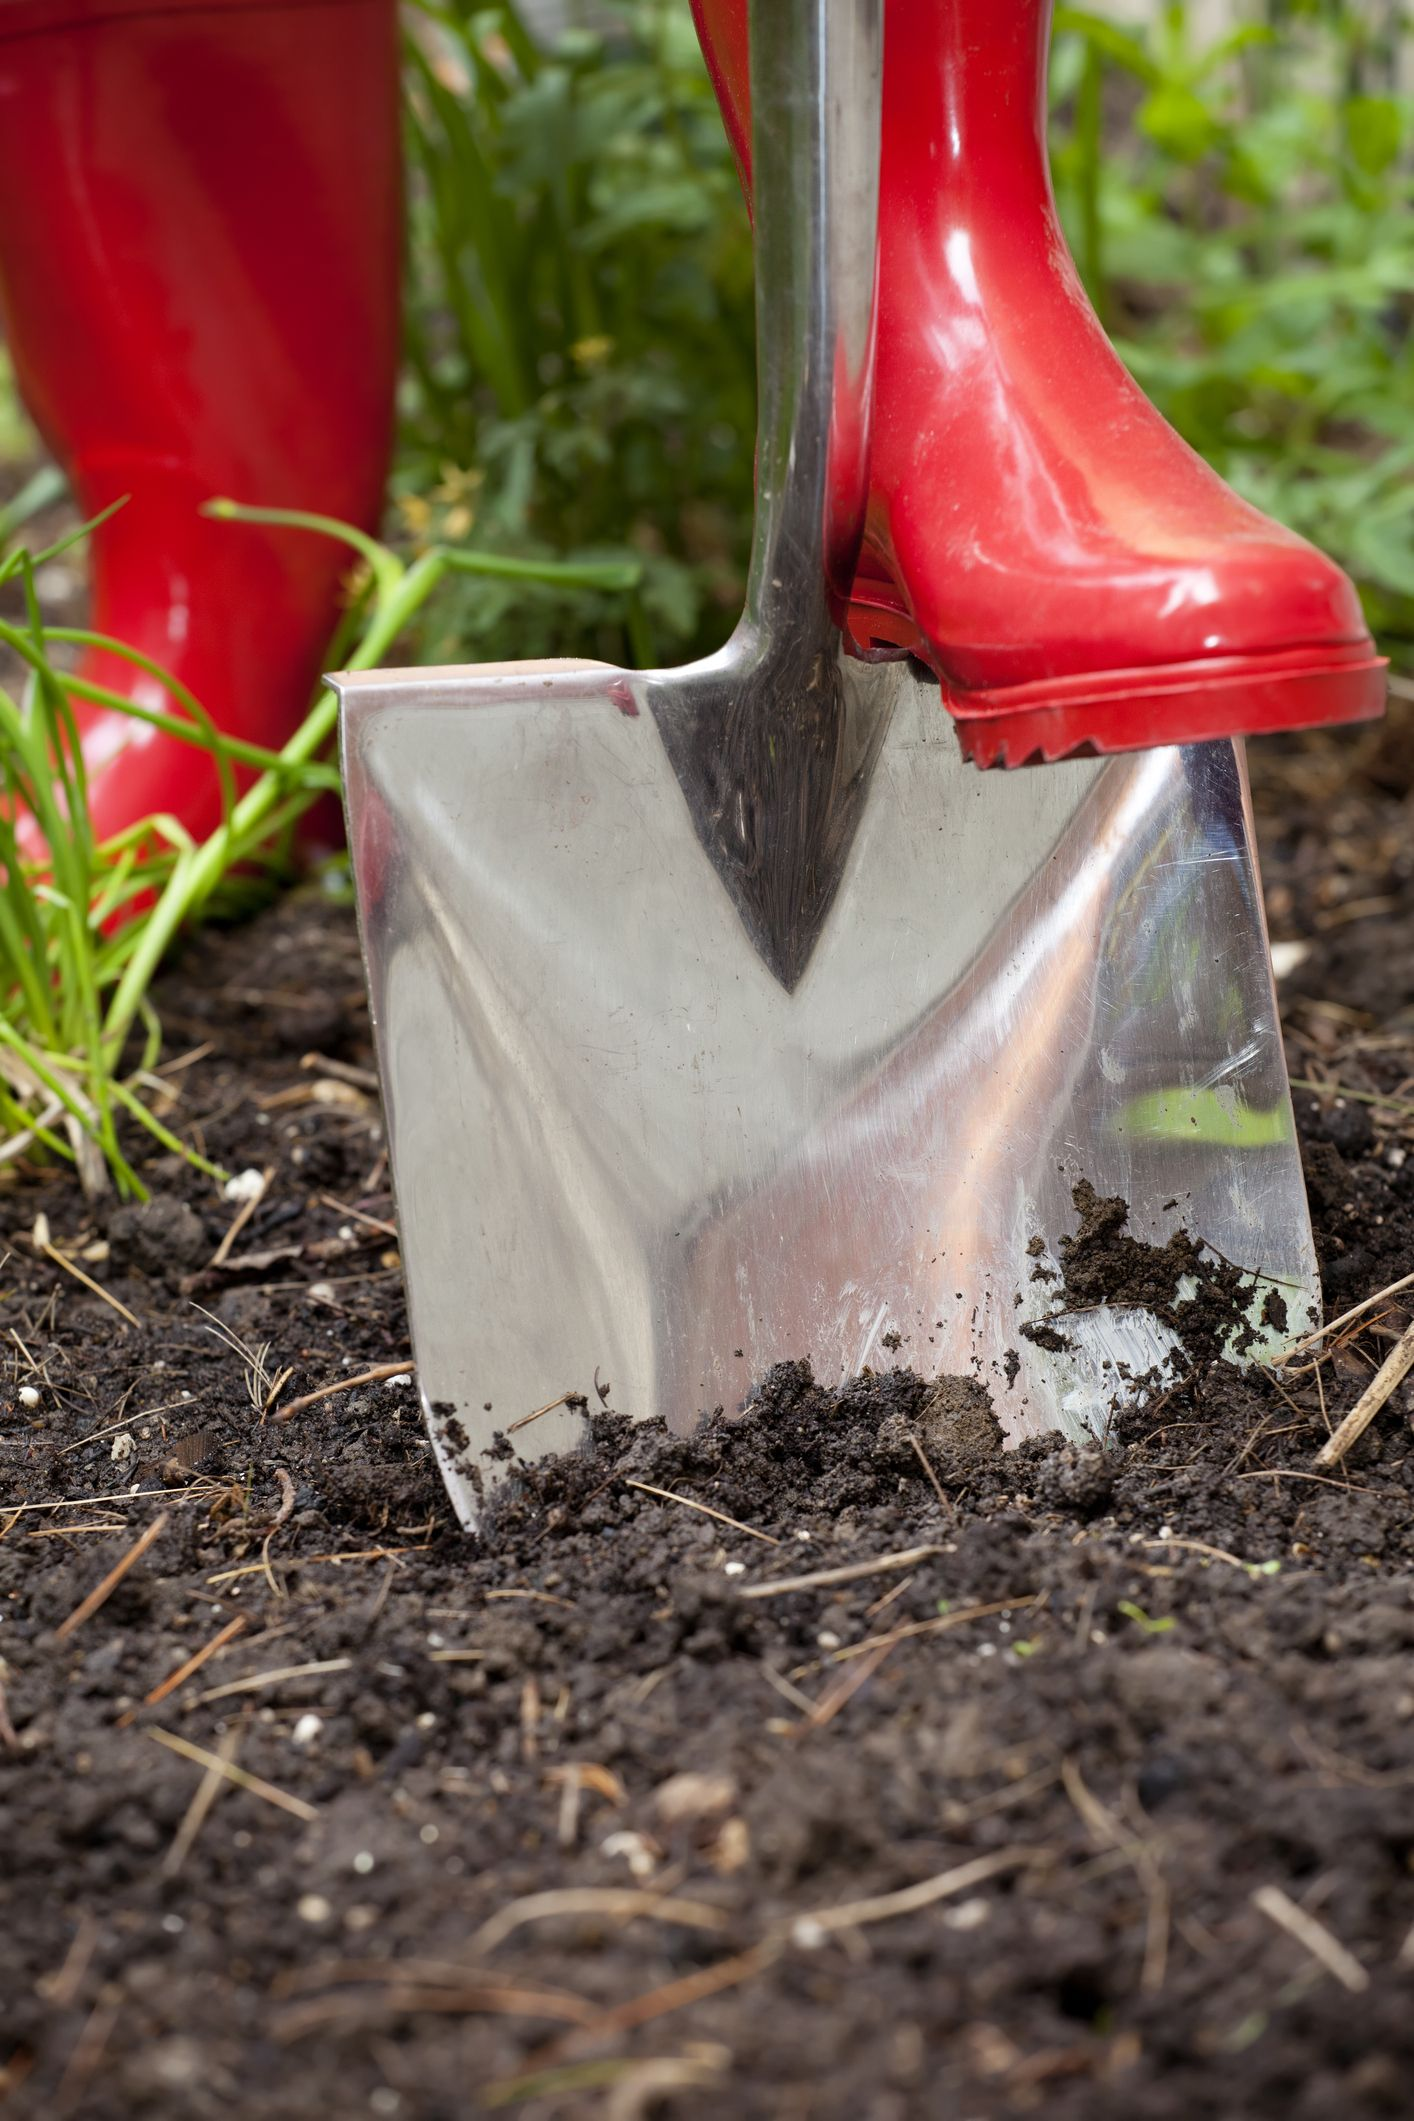 A shovel pushed by a gardener in red rubber boots digs into rich black soil in a vegetable garden